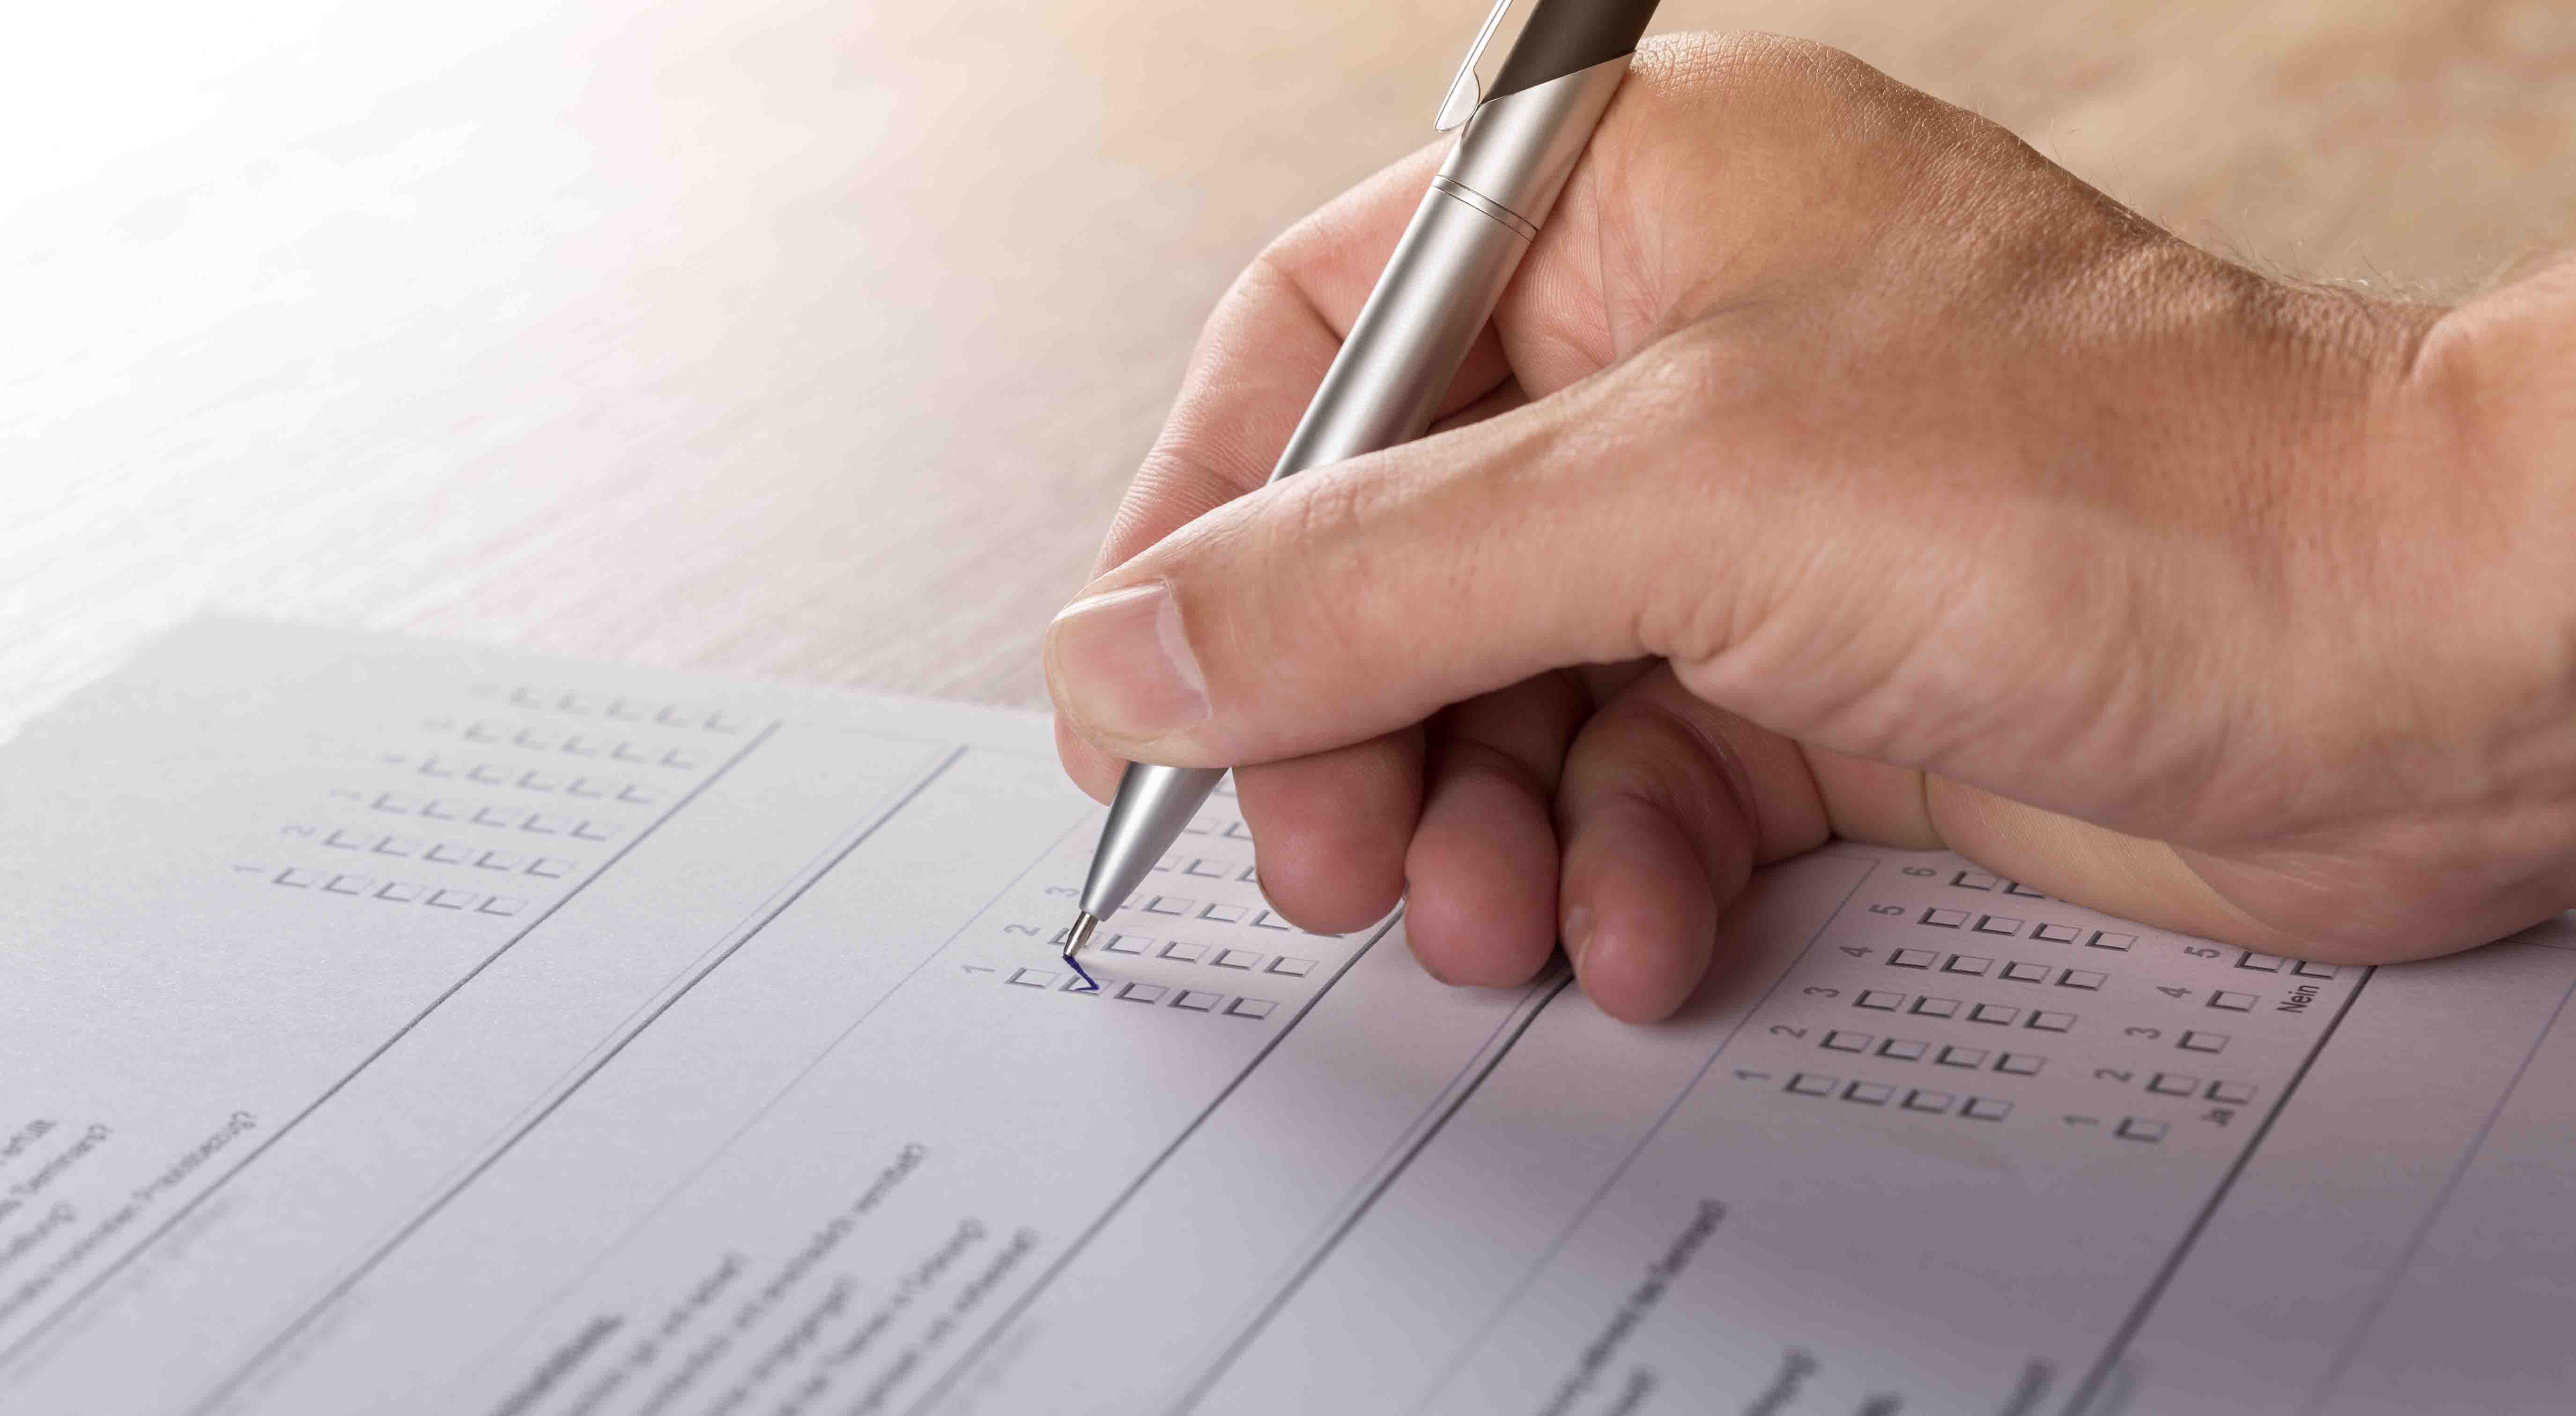 A hand is seen using a pen to mark on a test paper